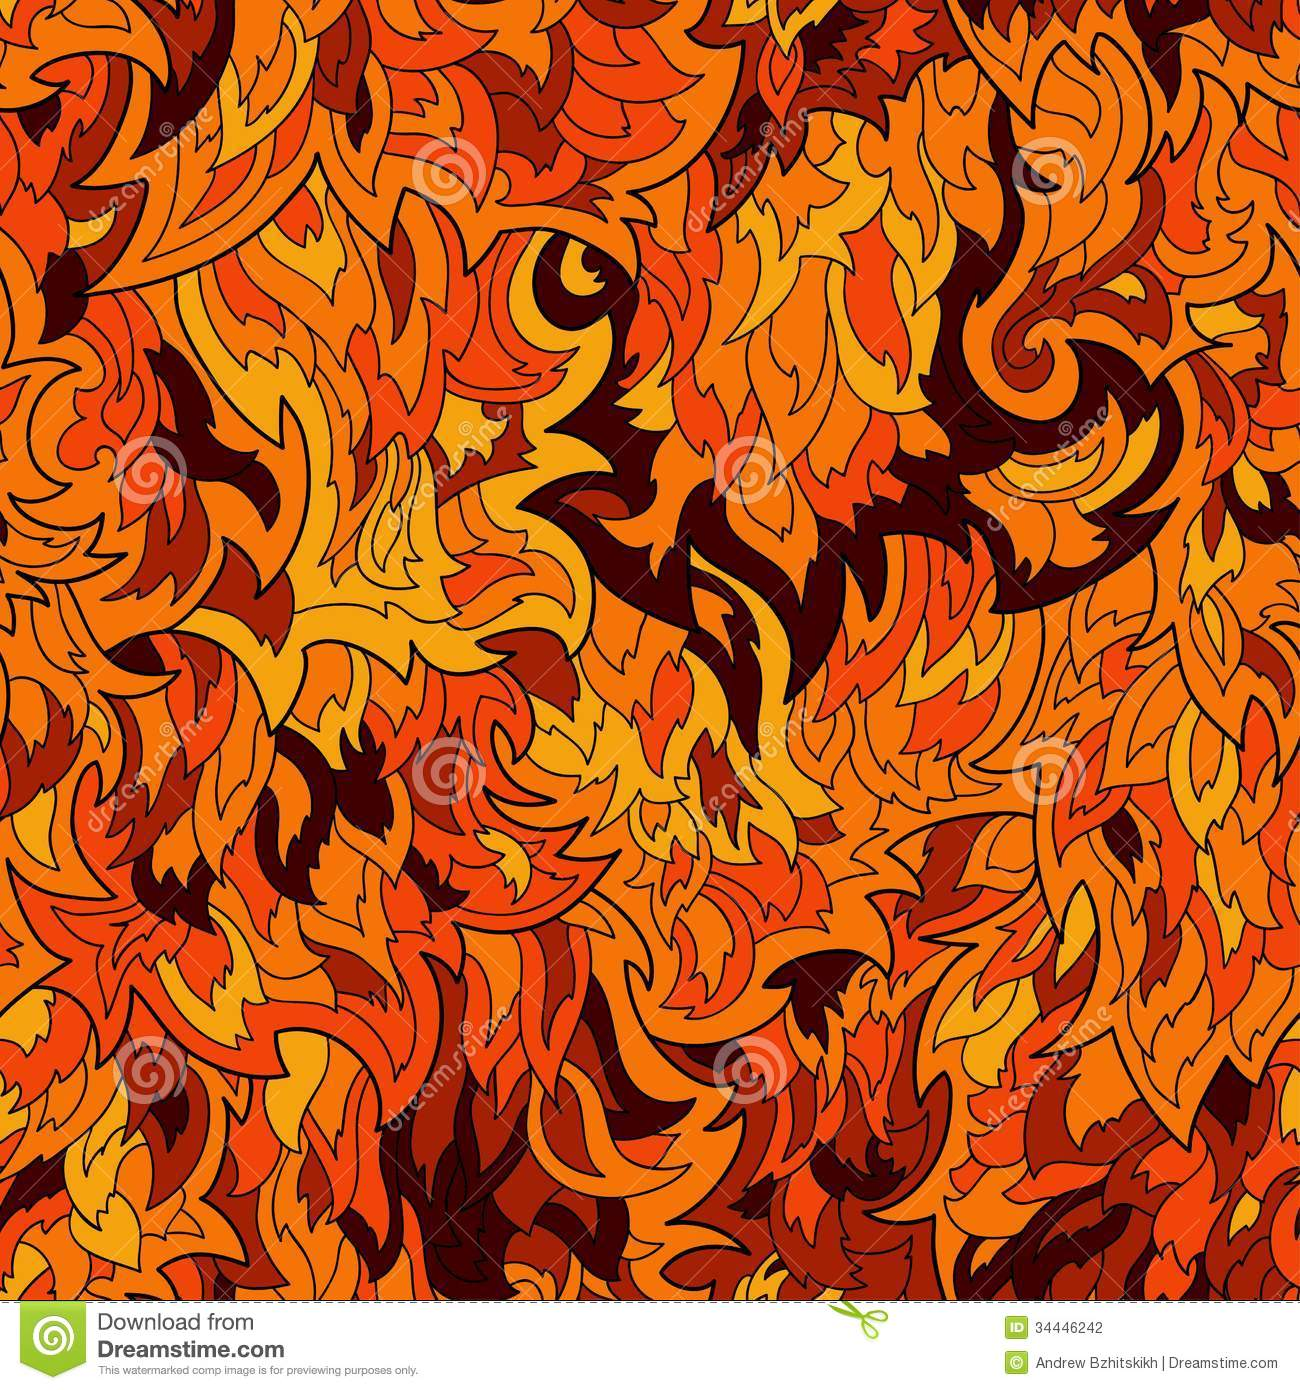 Can I Put Wallpaper On Top Of Wallpaper: Seamless Fur Or Flame Pattern Background Stock Photography